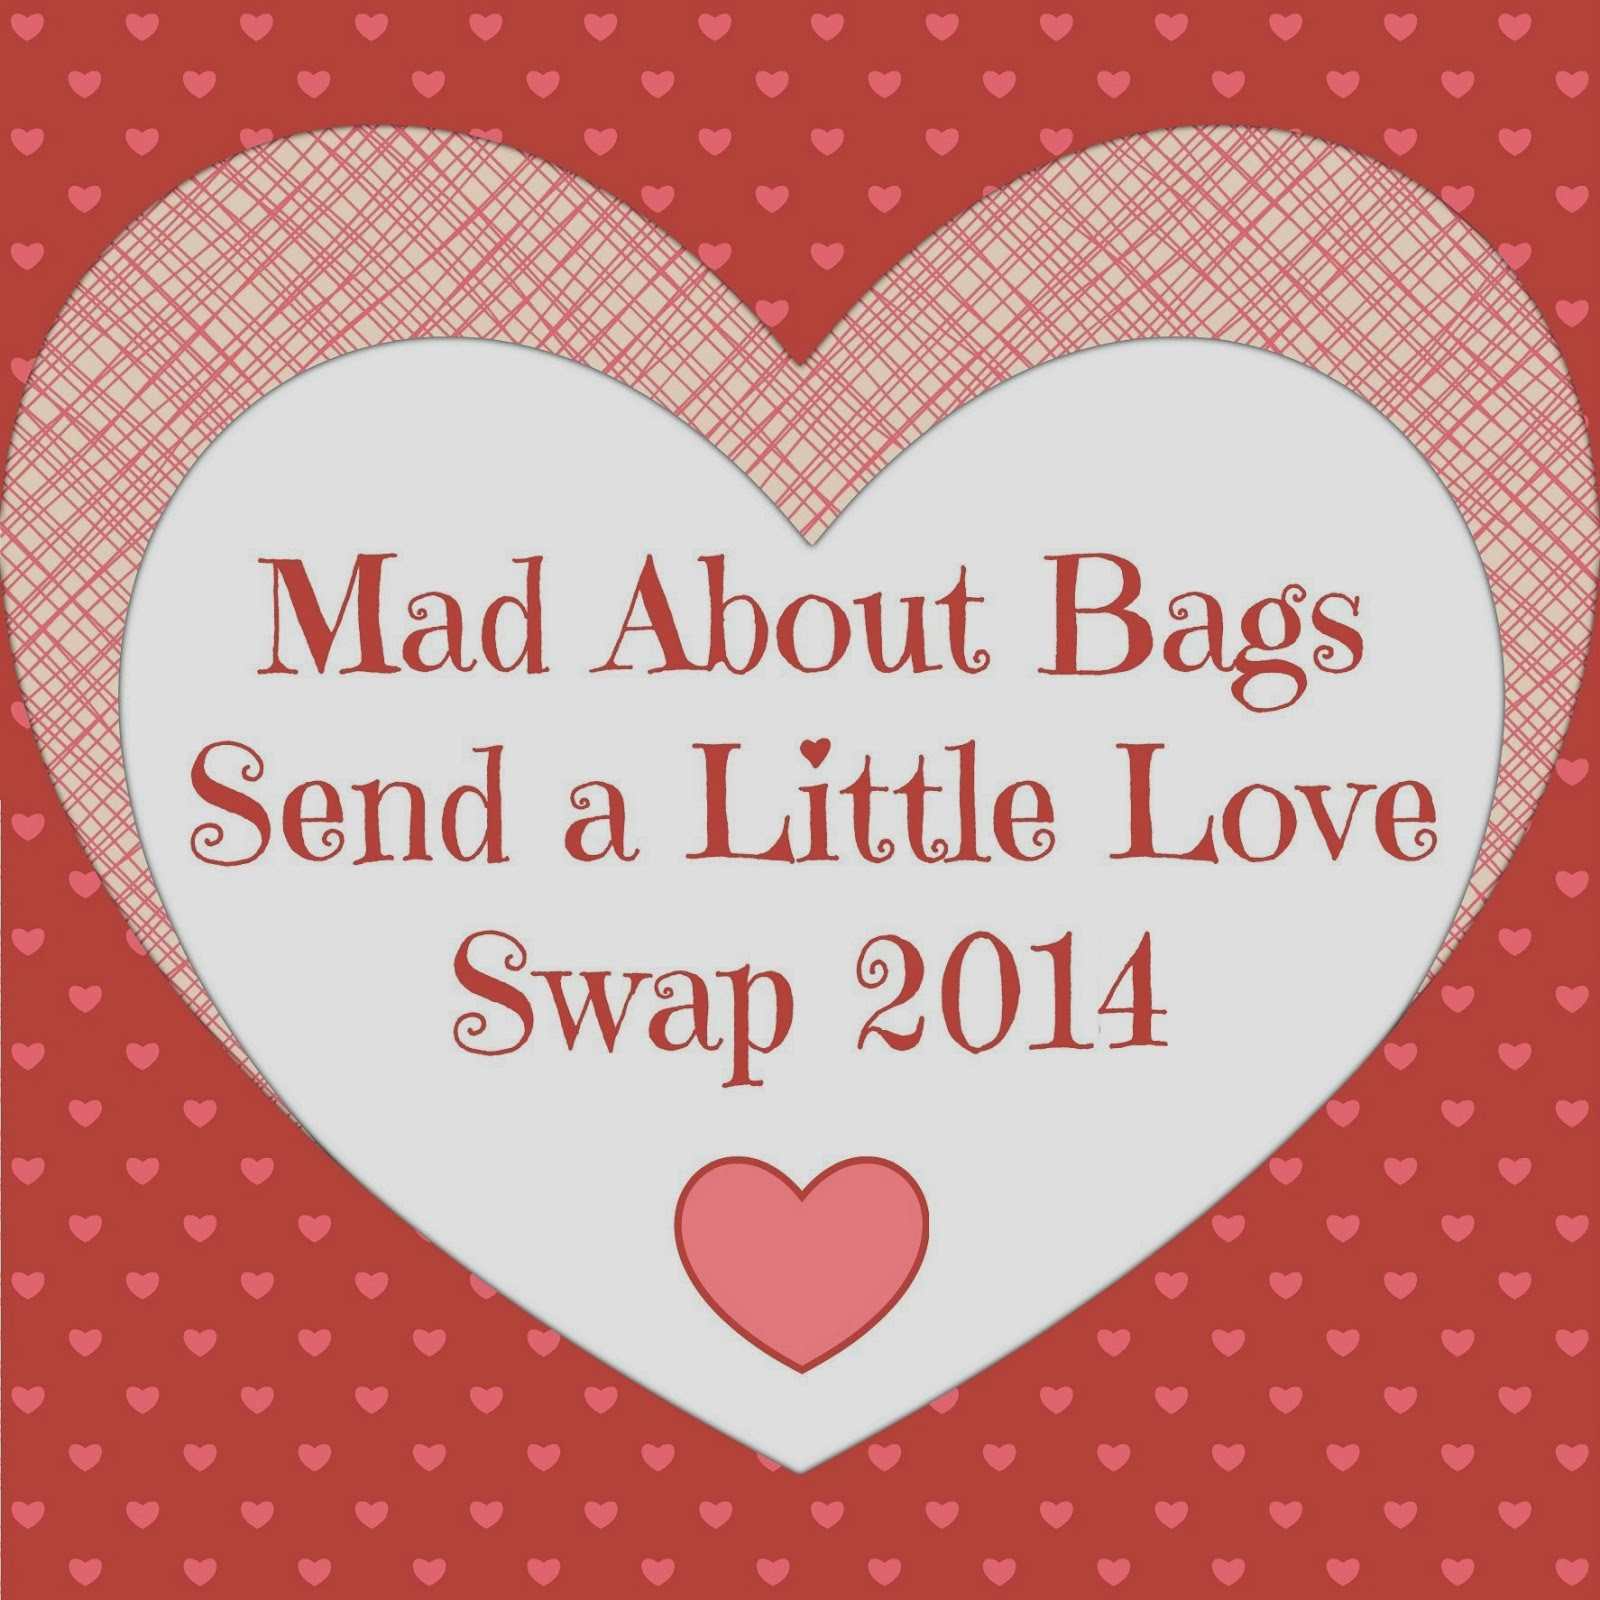 Send a Little Love Swap